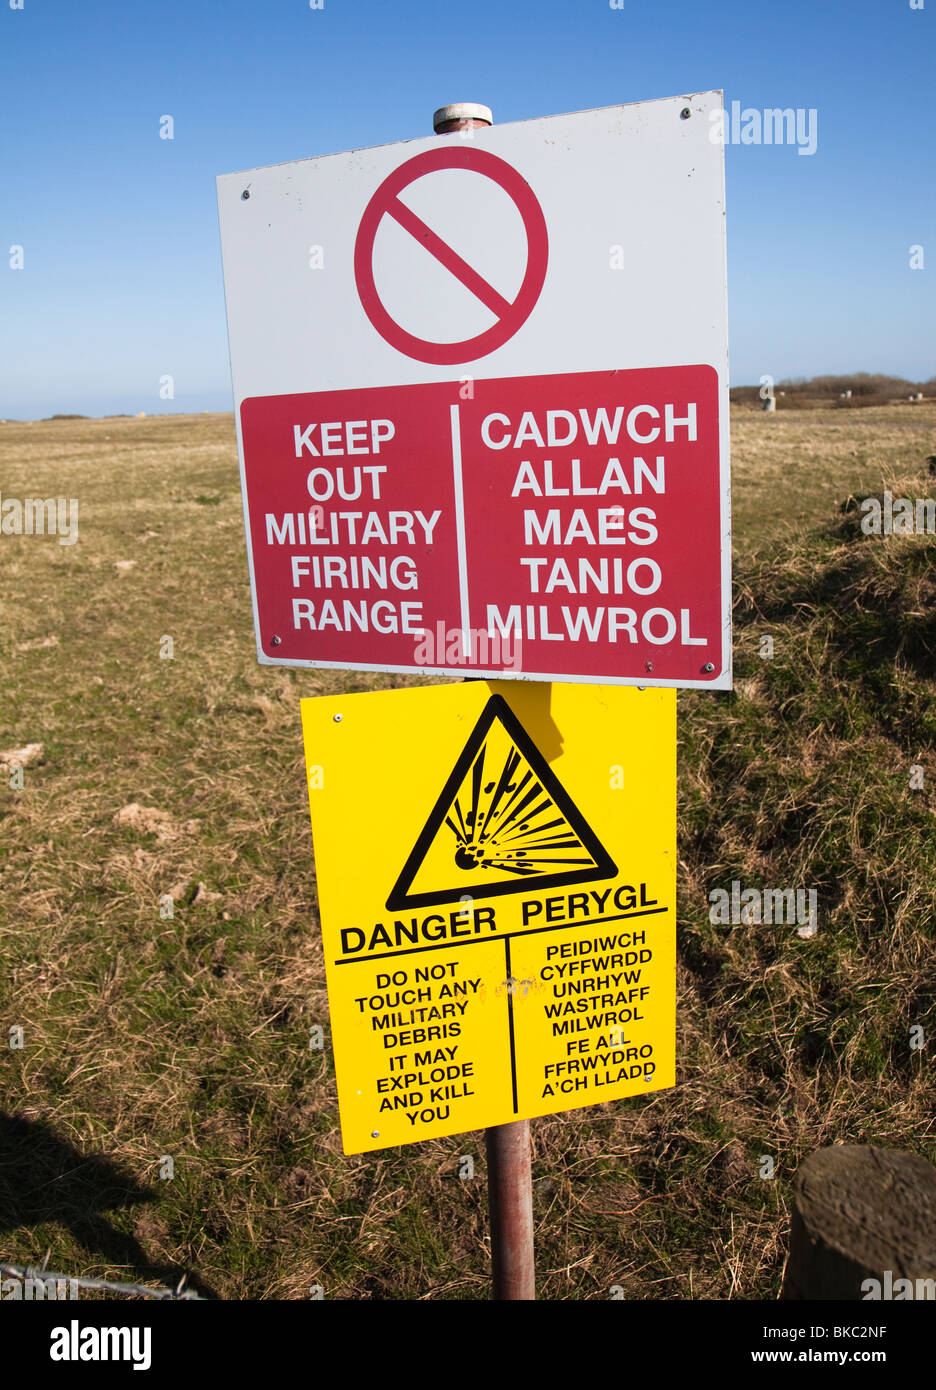 Warning sign for military firing range MOD Castlemartin range on coastal footpath Pembrokeshire Wales UK - Stock Image